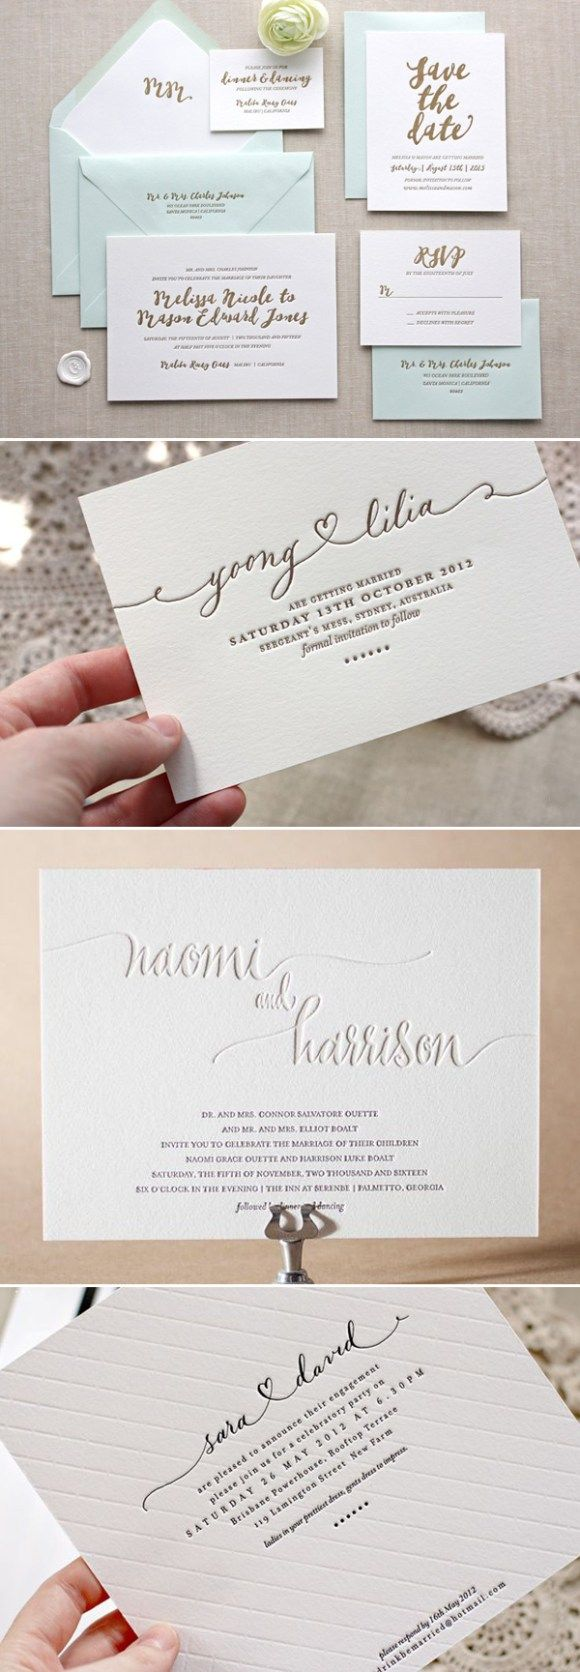 funny wedding invitation rsvp goes viral%0A    Creative Invitation Ideas for Minimalist Couples